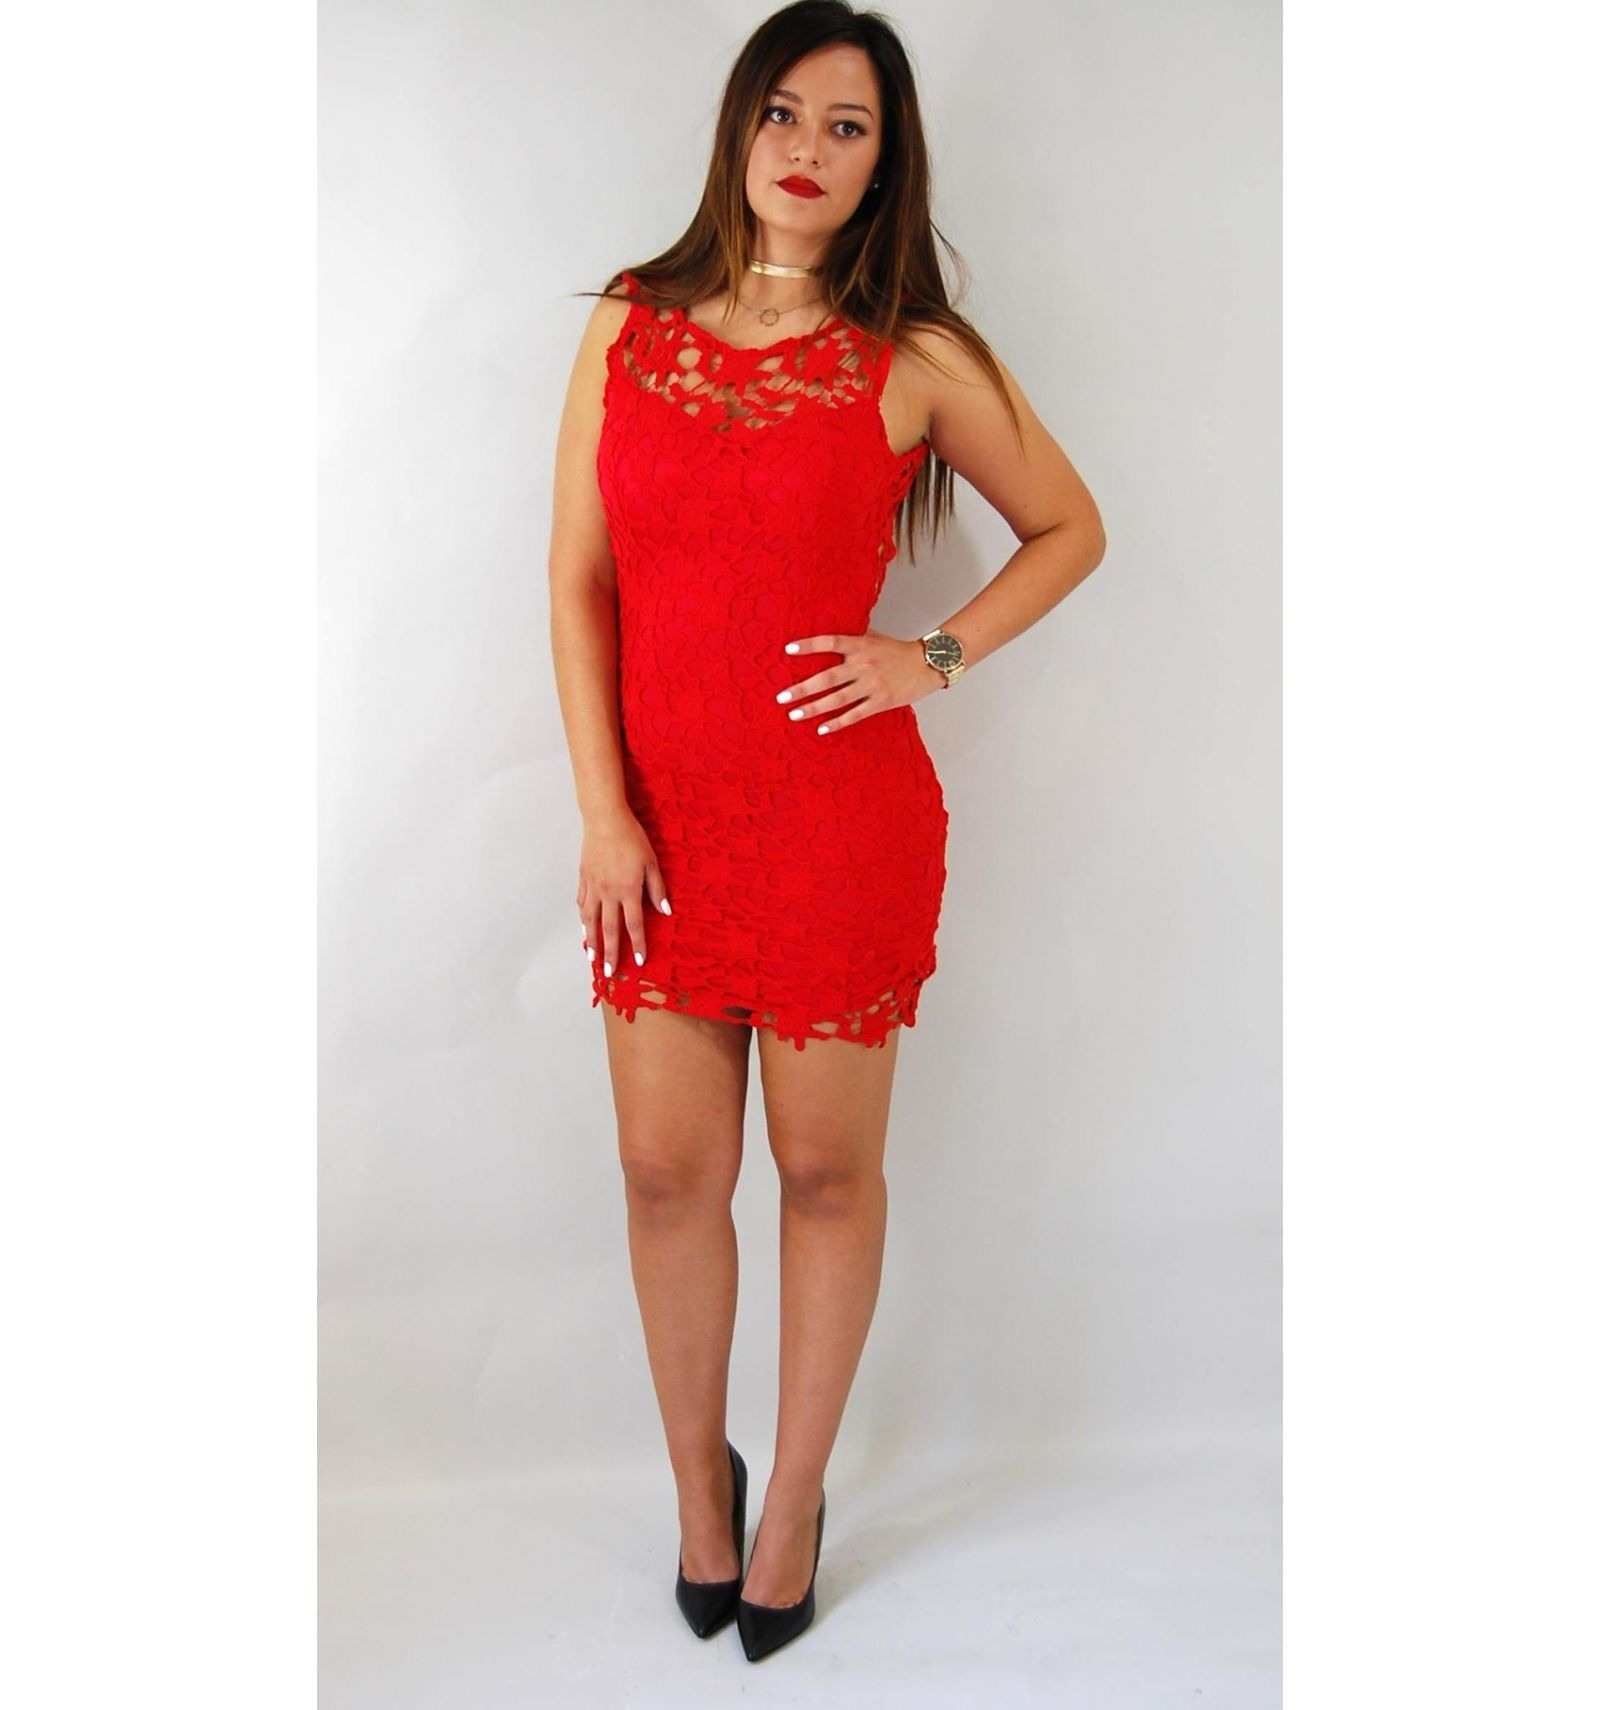 Formal Genial Rotes Enges Kleid StylishFormal Schön Rotes Enges Kleid Boutique